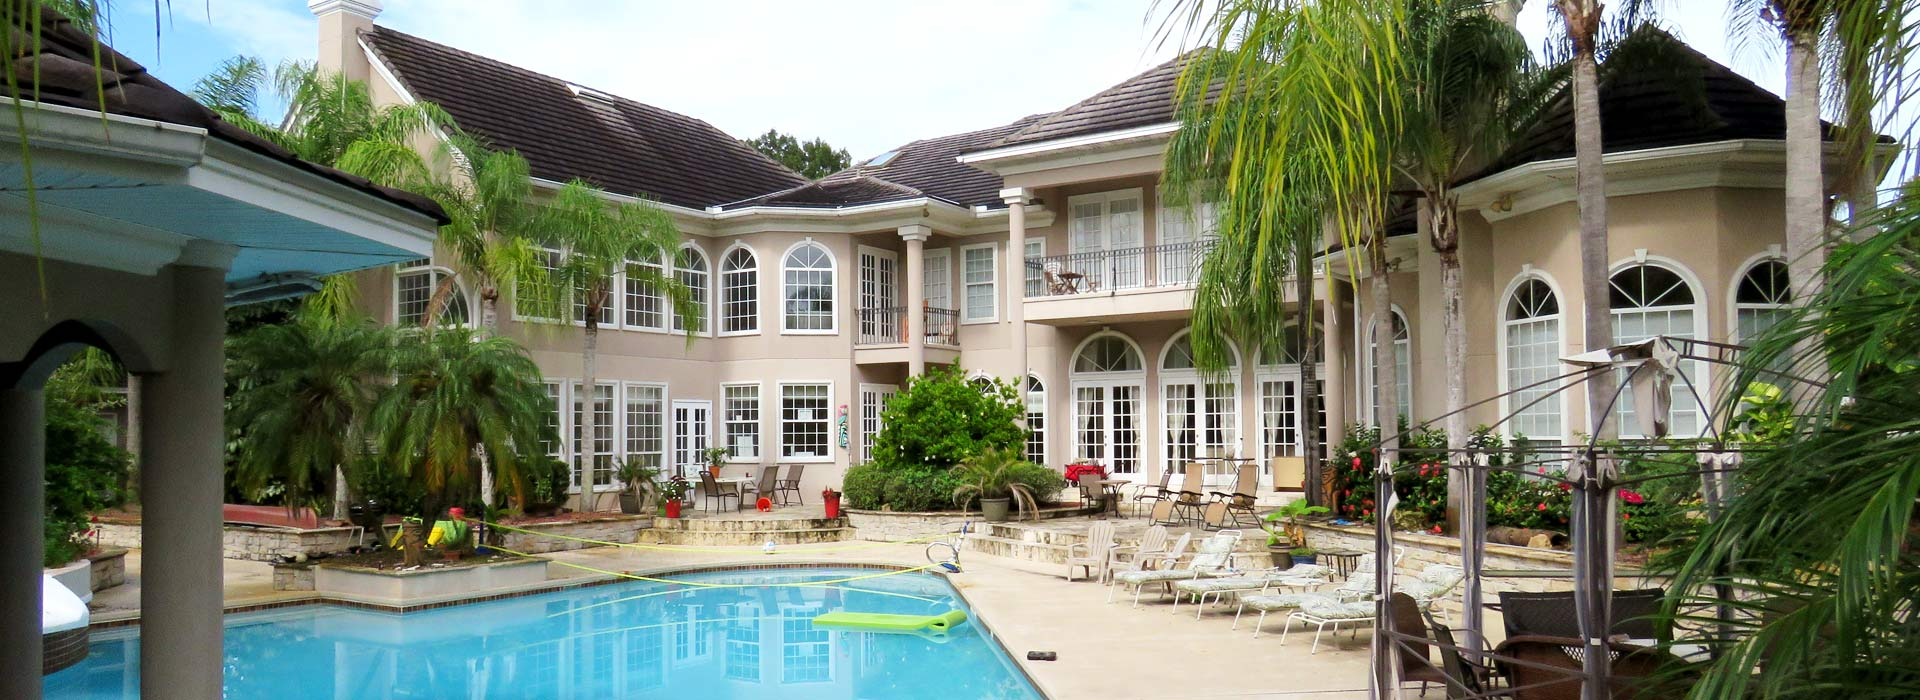 Central Florida Home Inspections Luxury House